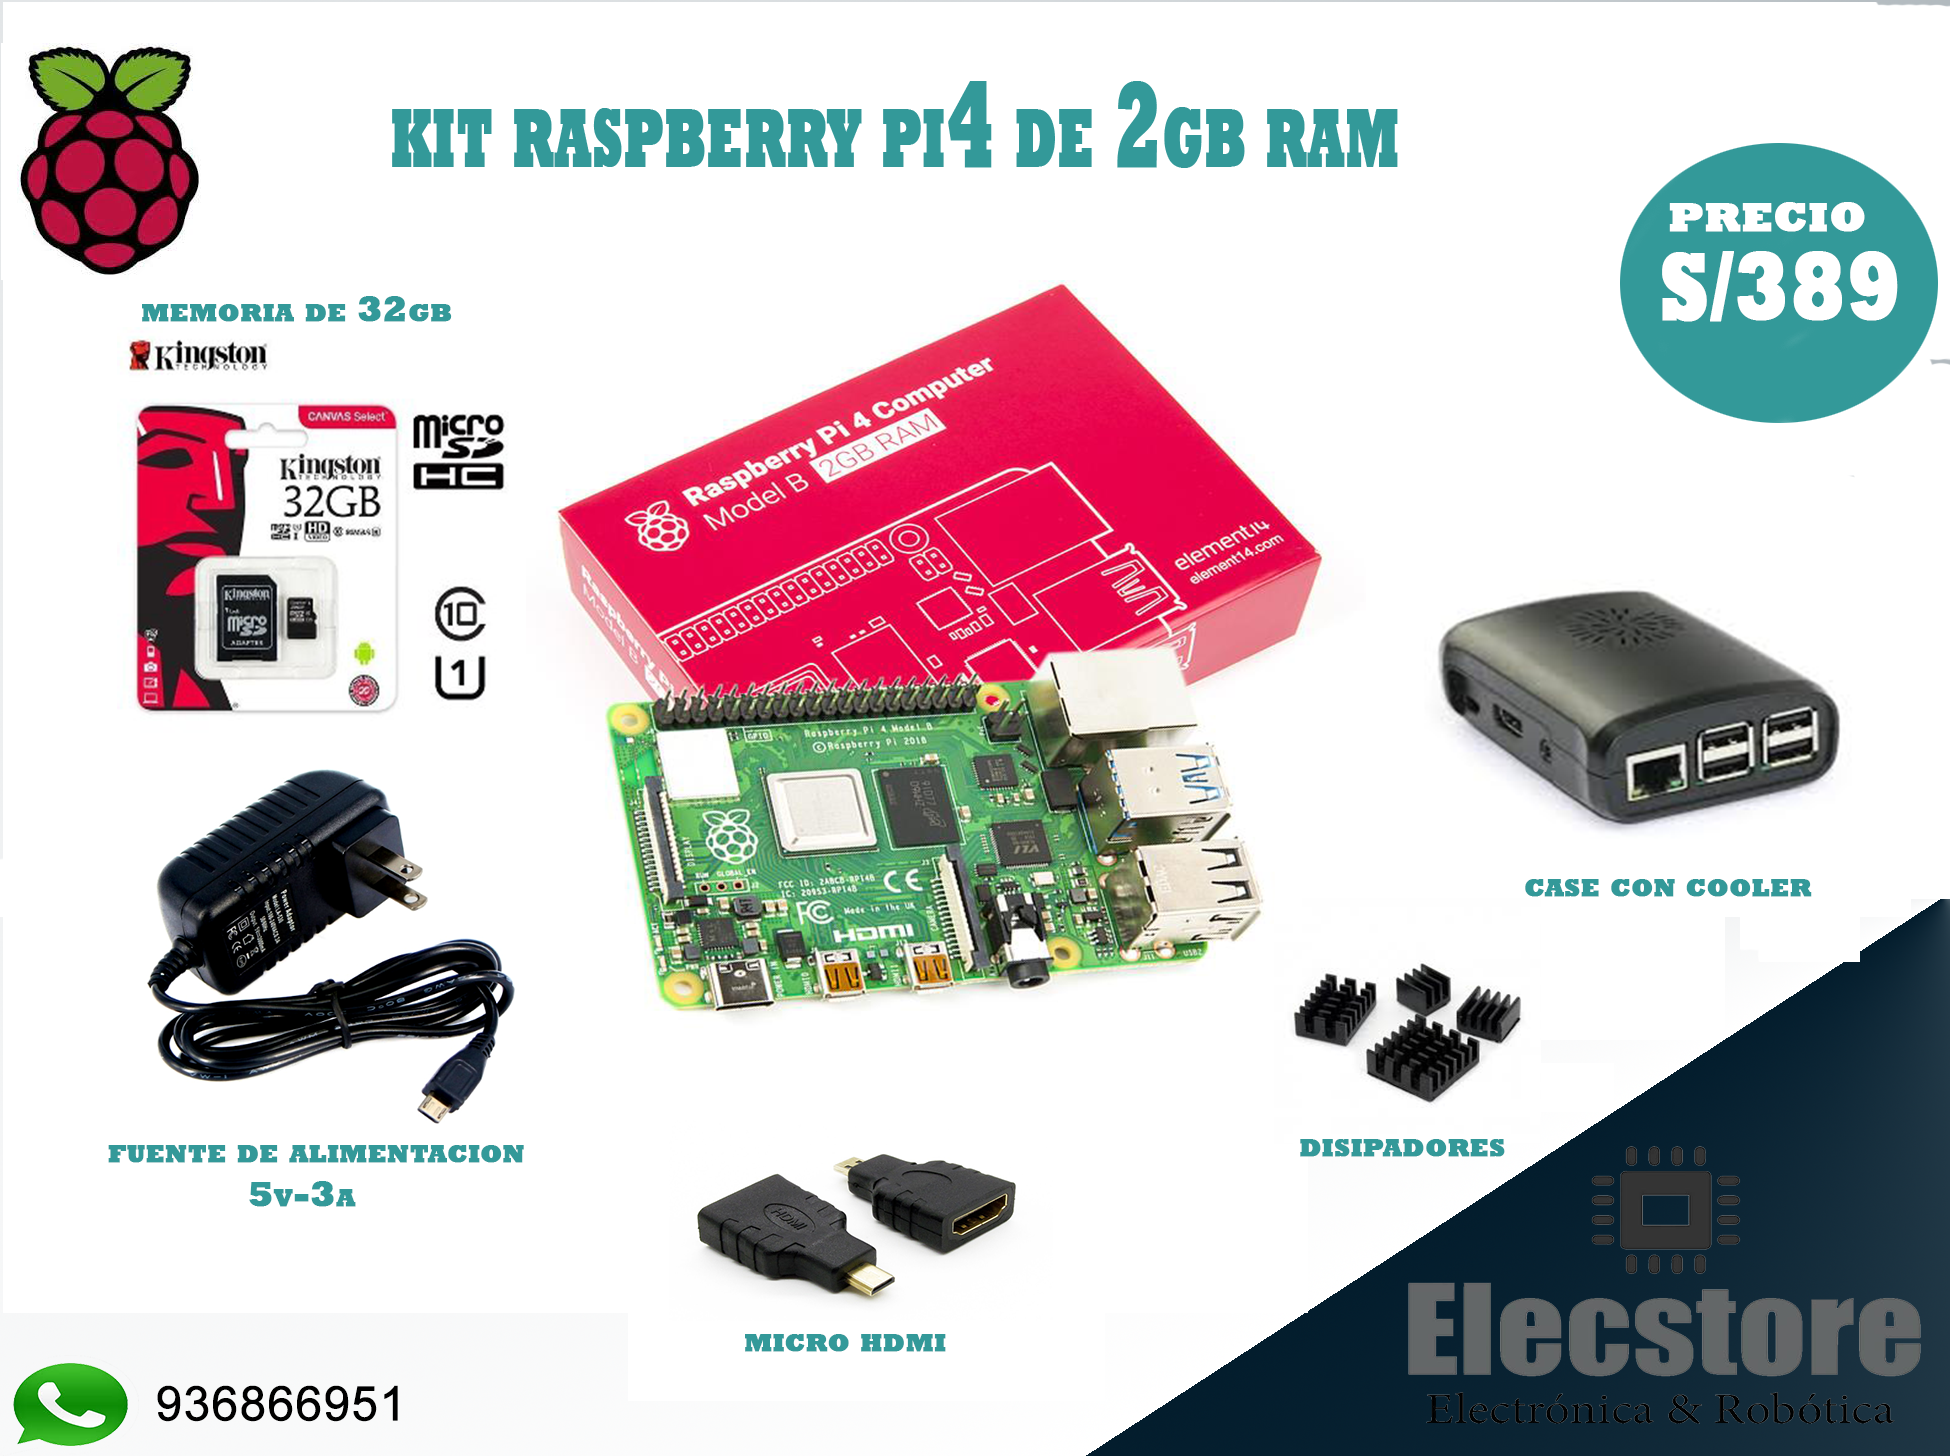 kit Raspberry pi4 de 2gb